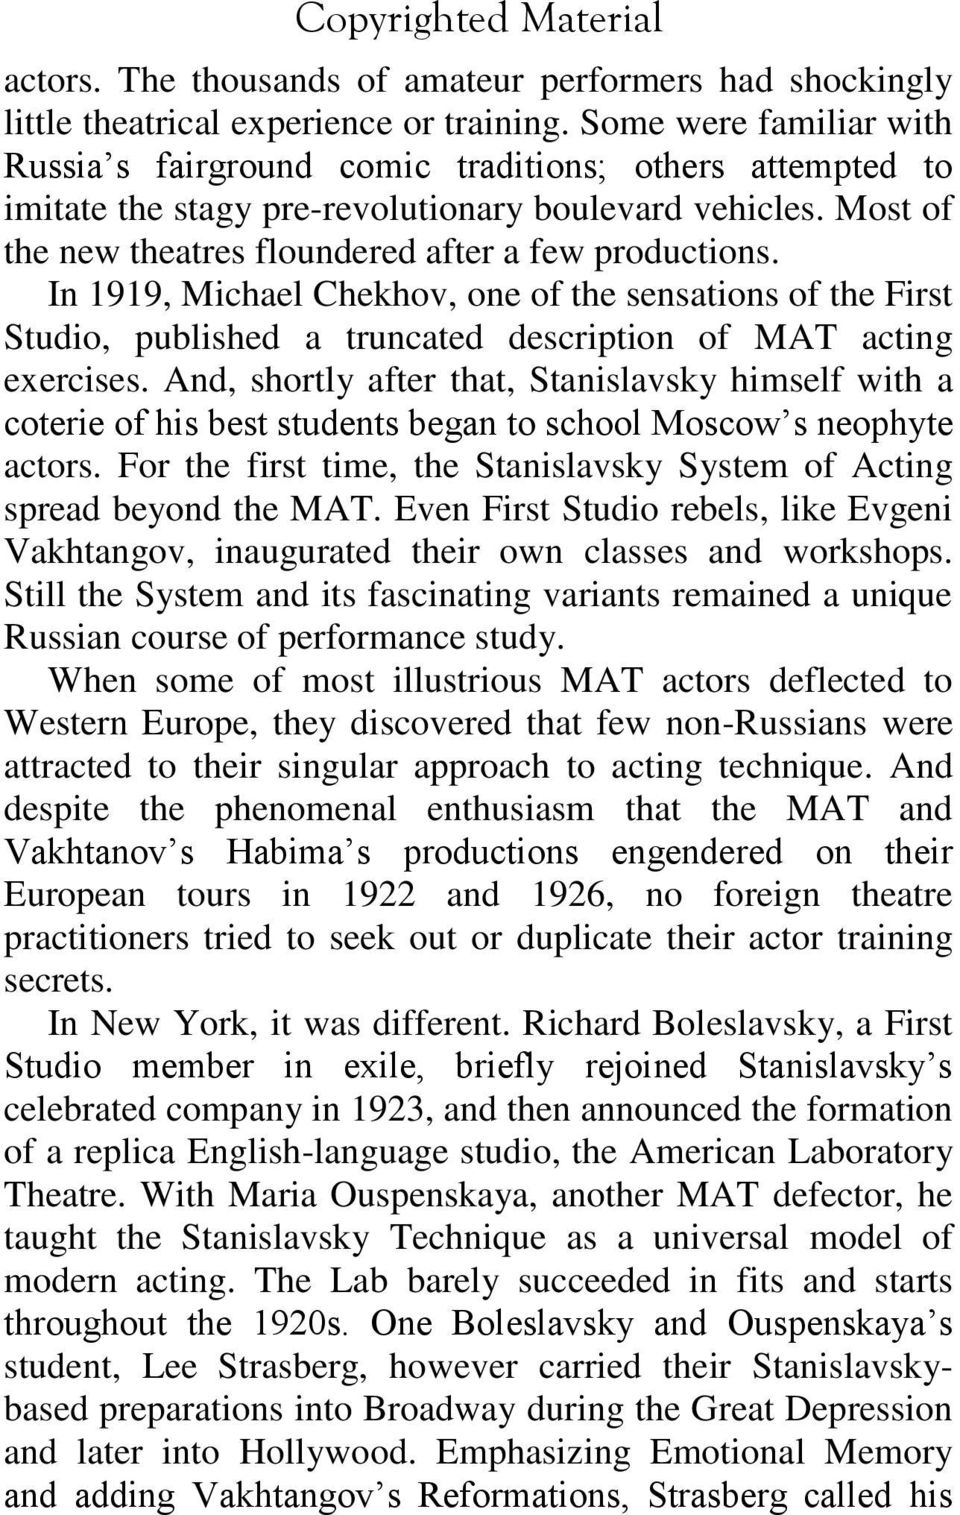 In 1919, Michael Chekhov, one of the sensations of the First Studio, published a truncated description of MAT acting exercises.